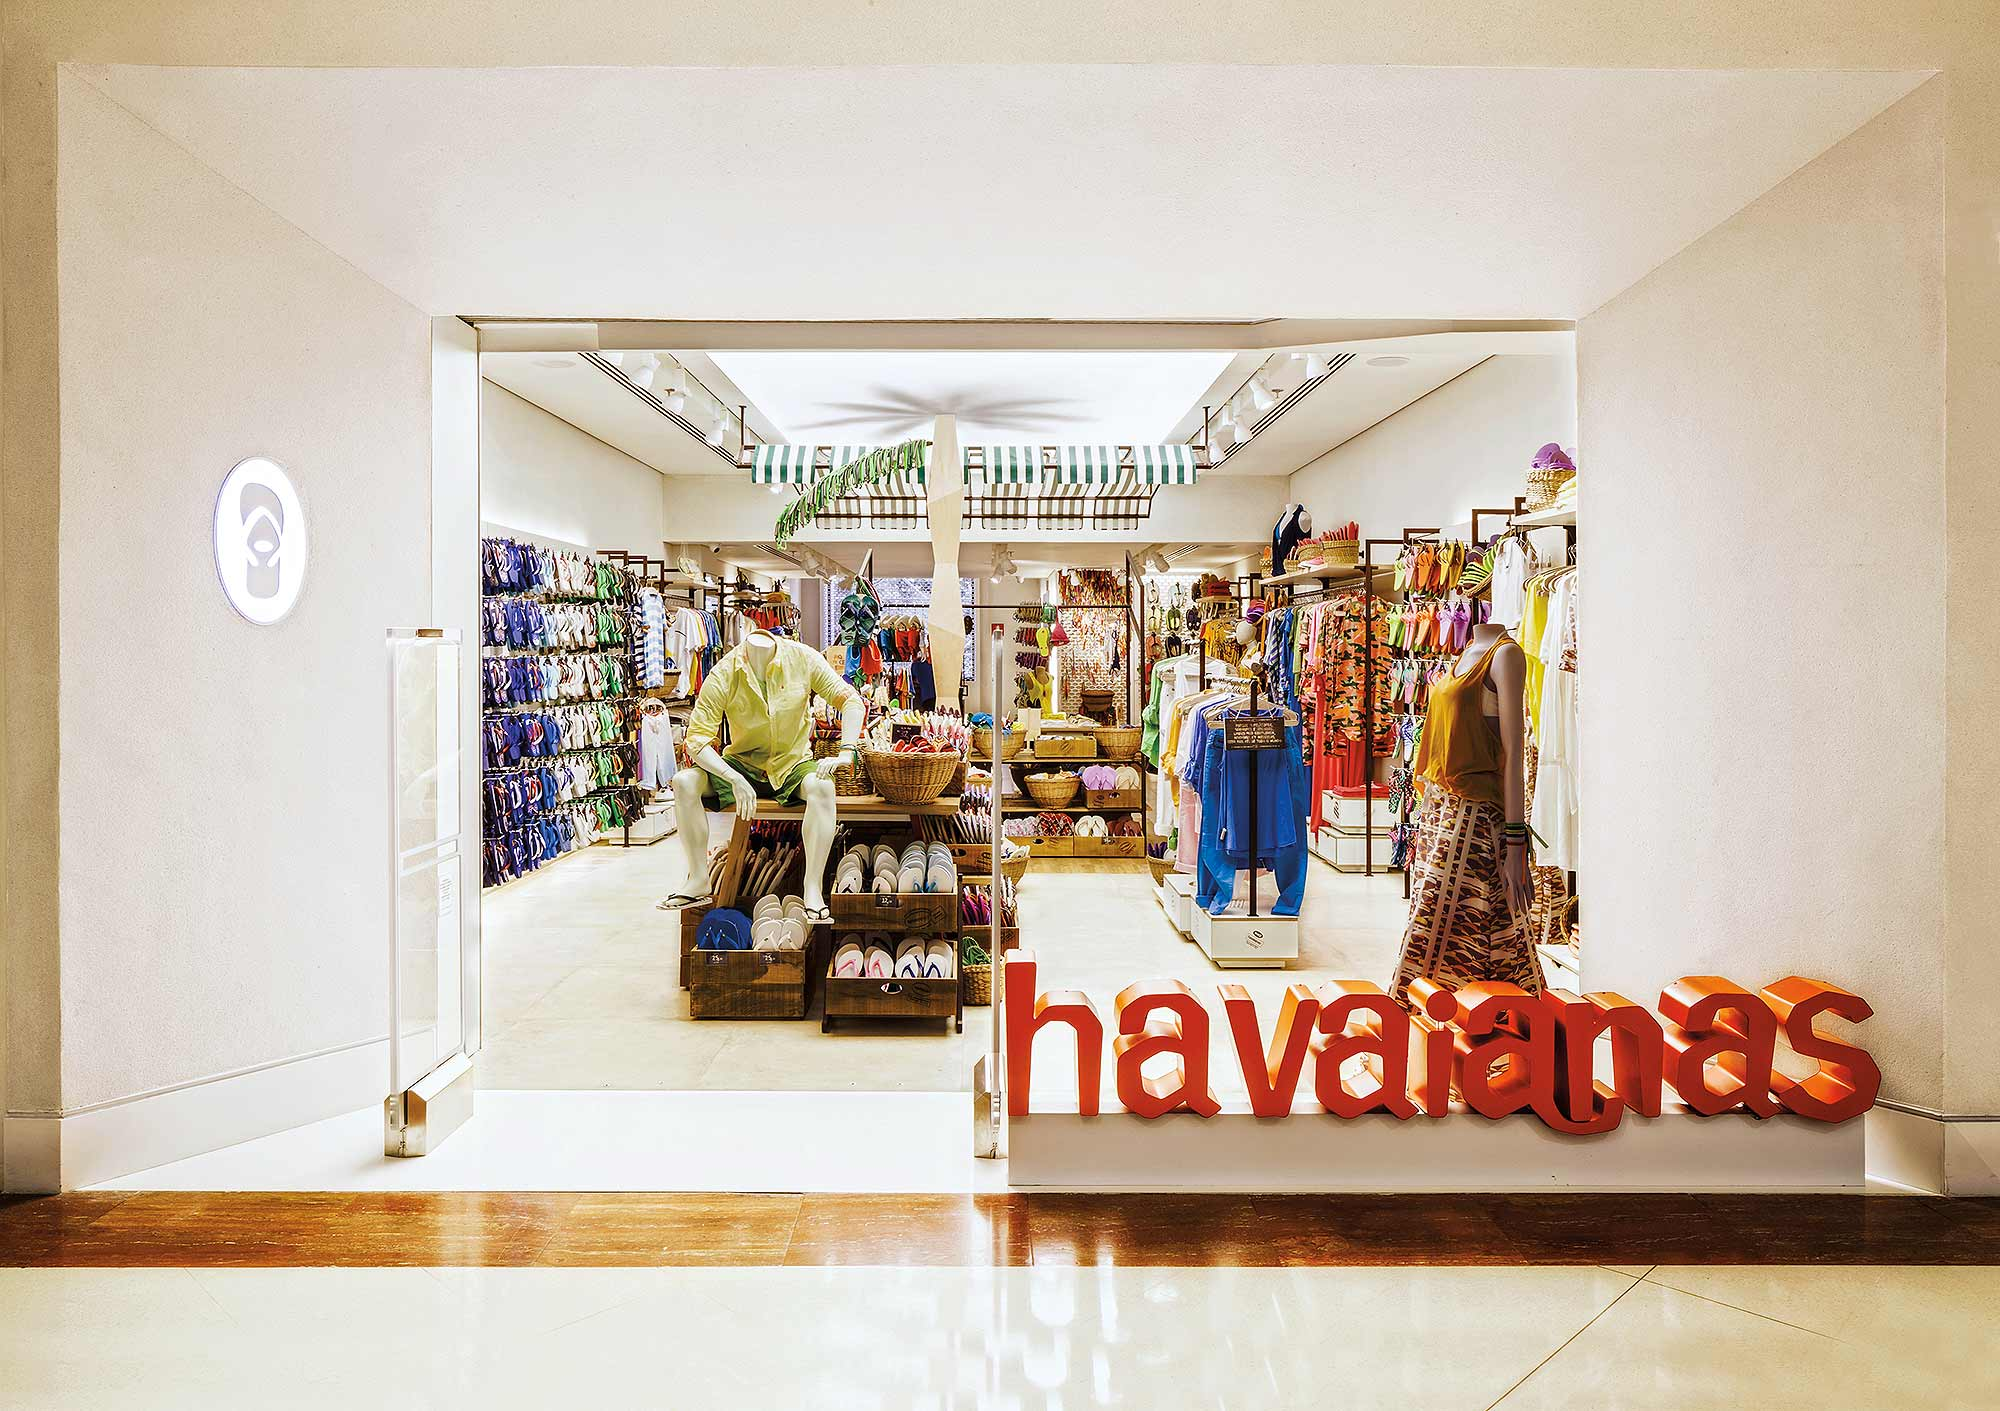 f19844a63a060 The new Havaianas store in São Paulo uses an open-air market theme to add  clothing to the mix.